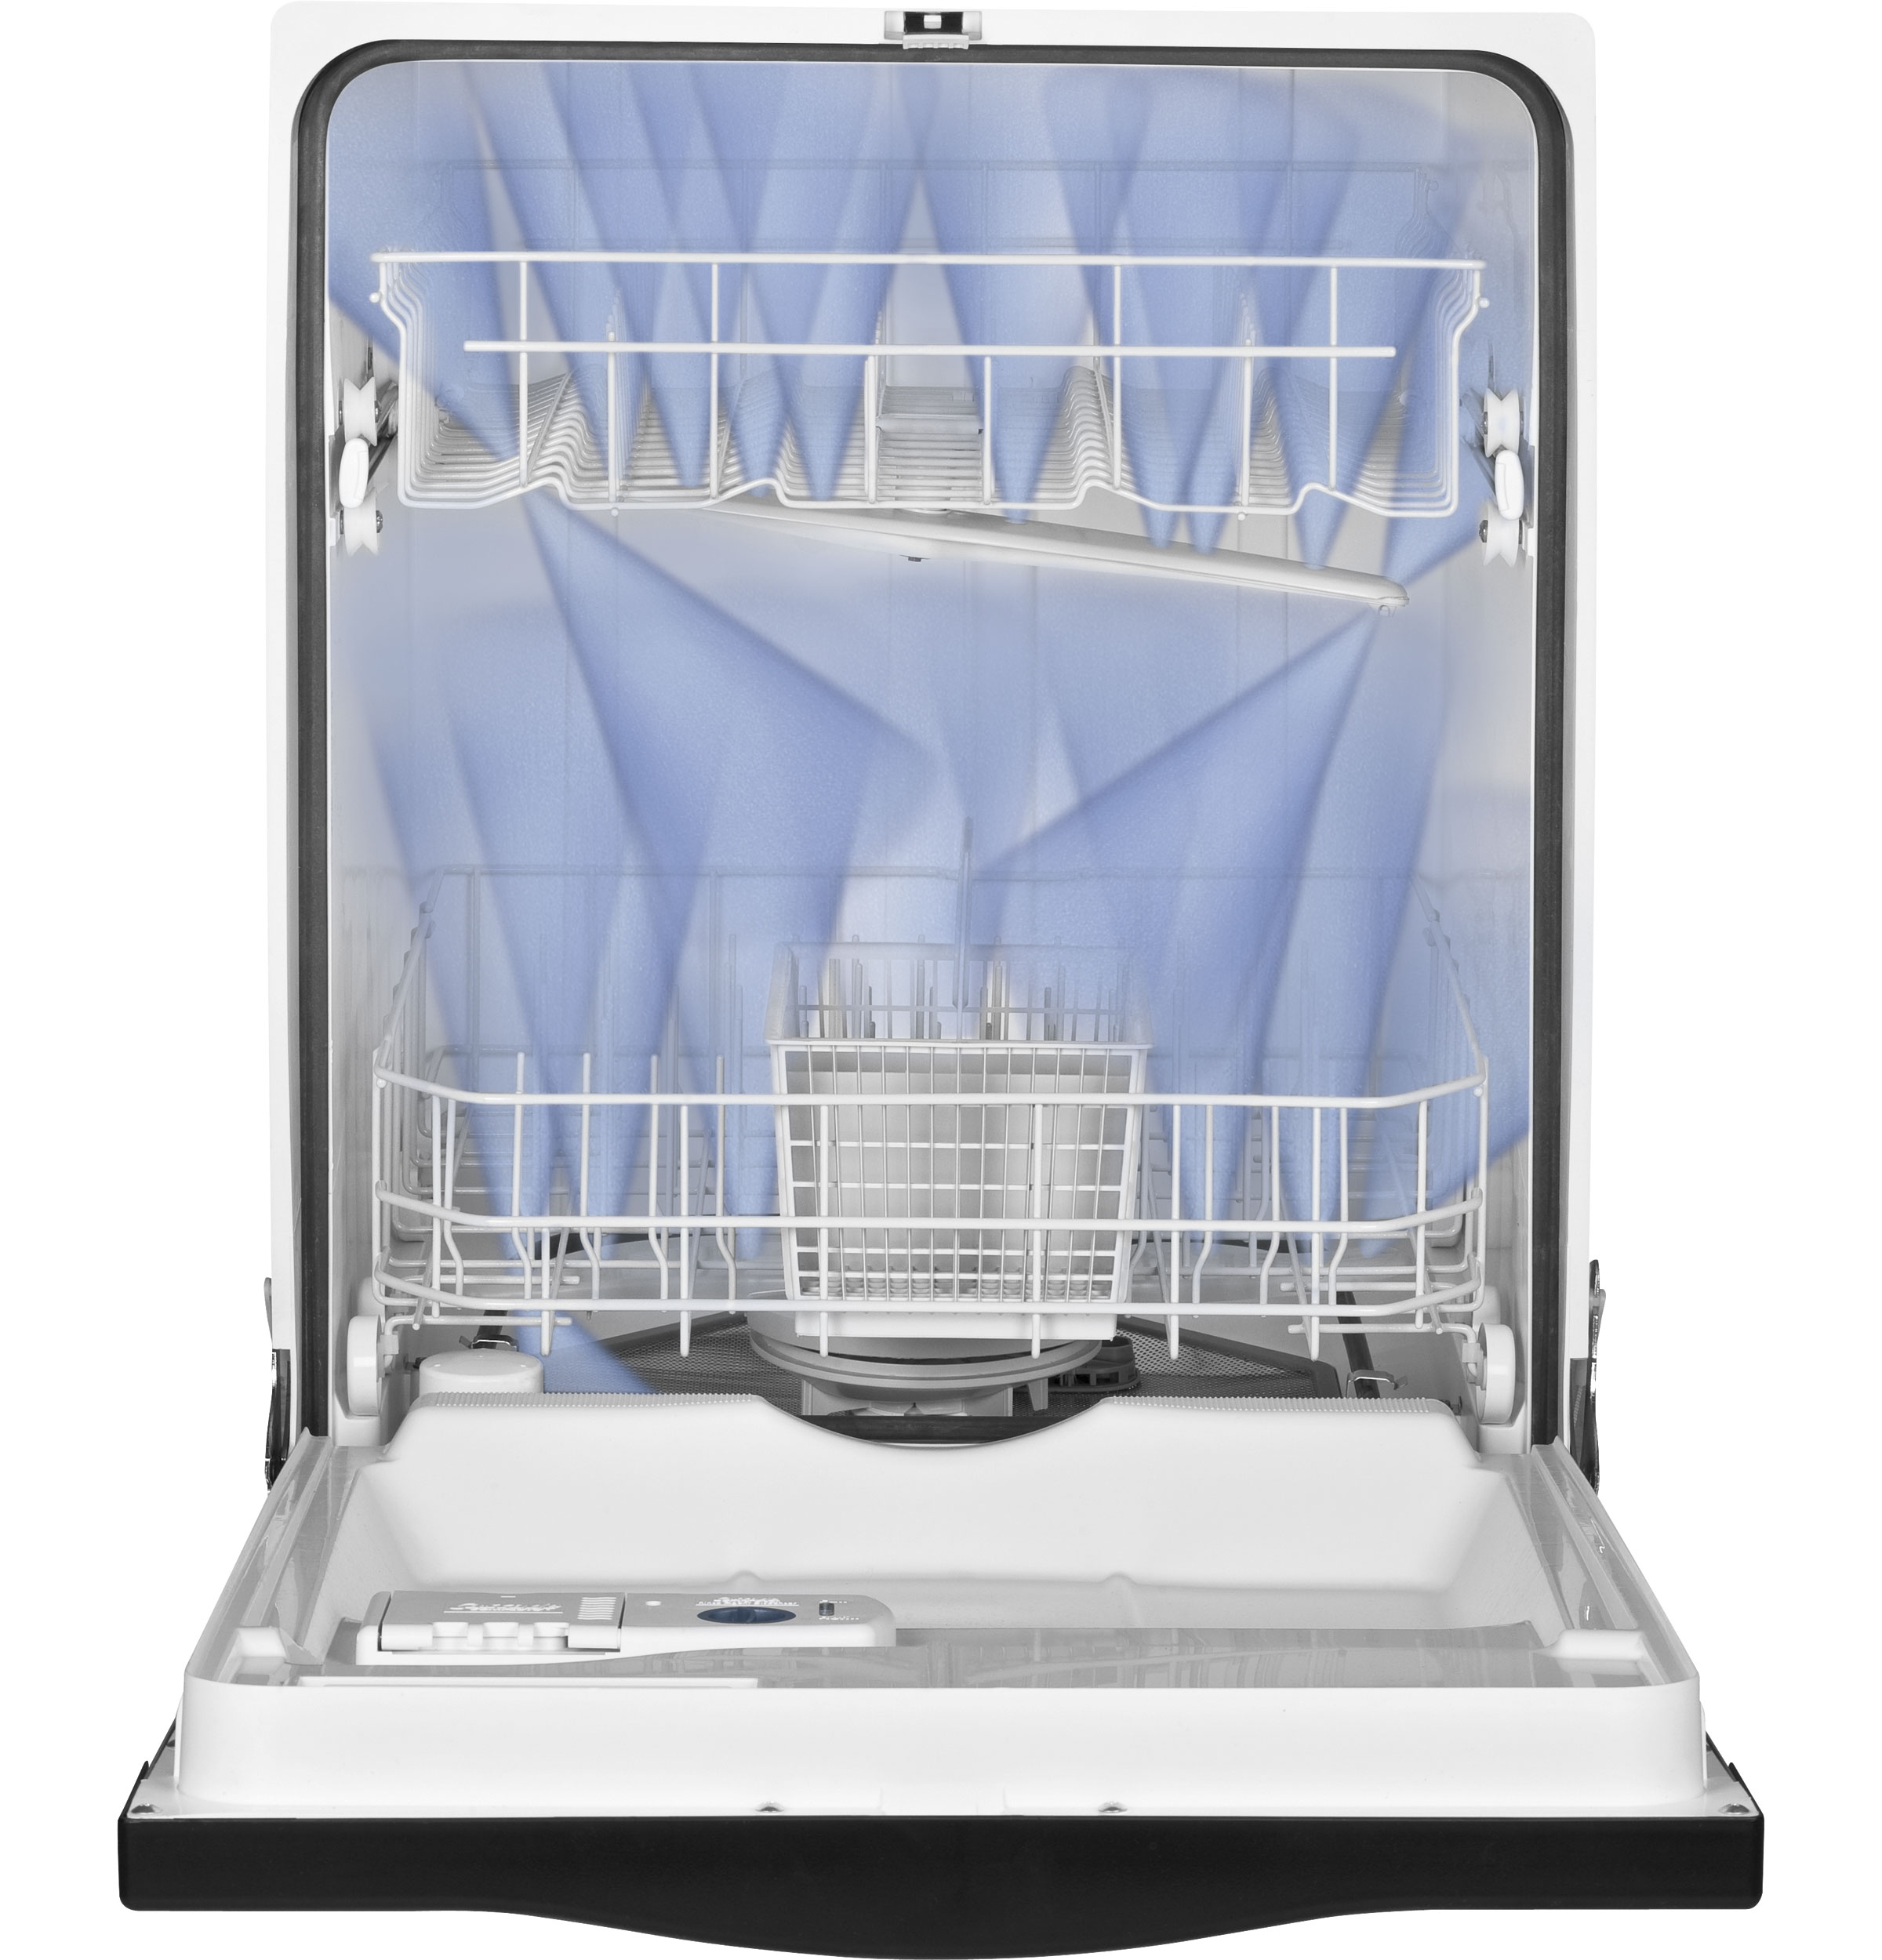 Ge 174 Tall Tub Built In Dishwasher Gld2850tcs Ge Appliances